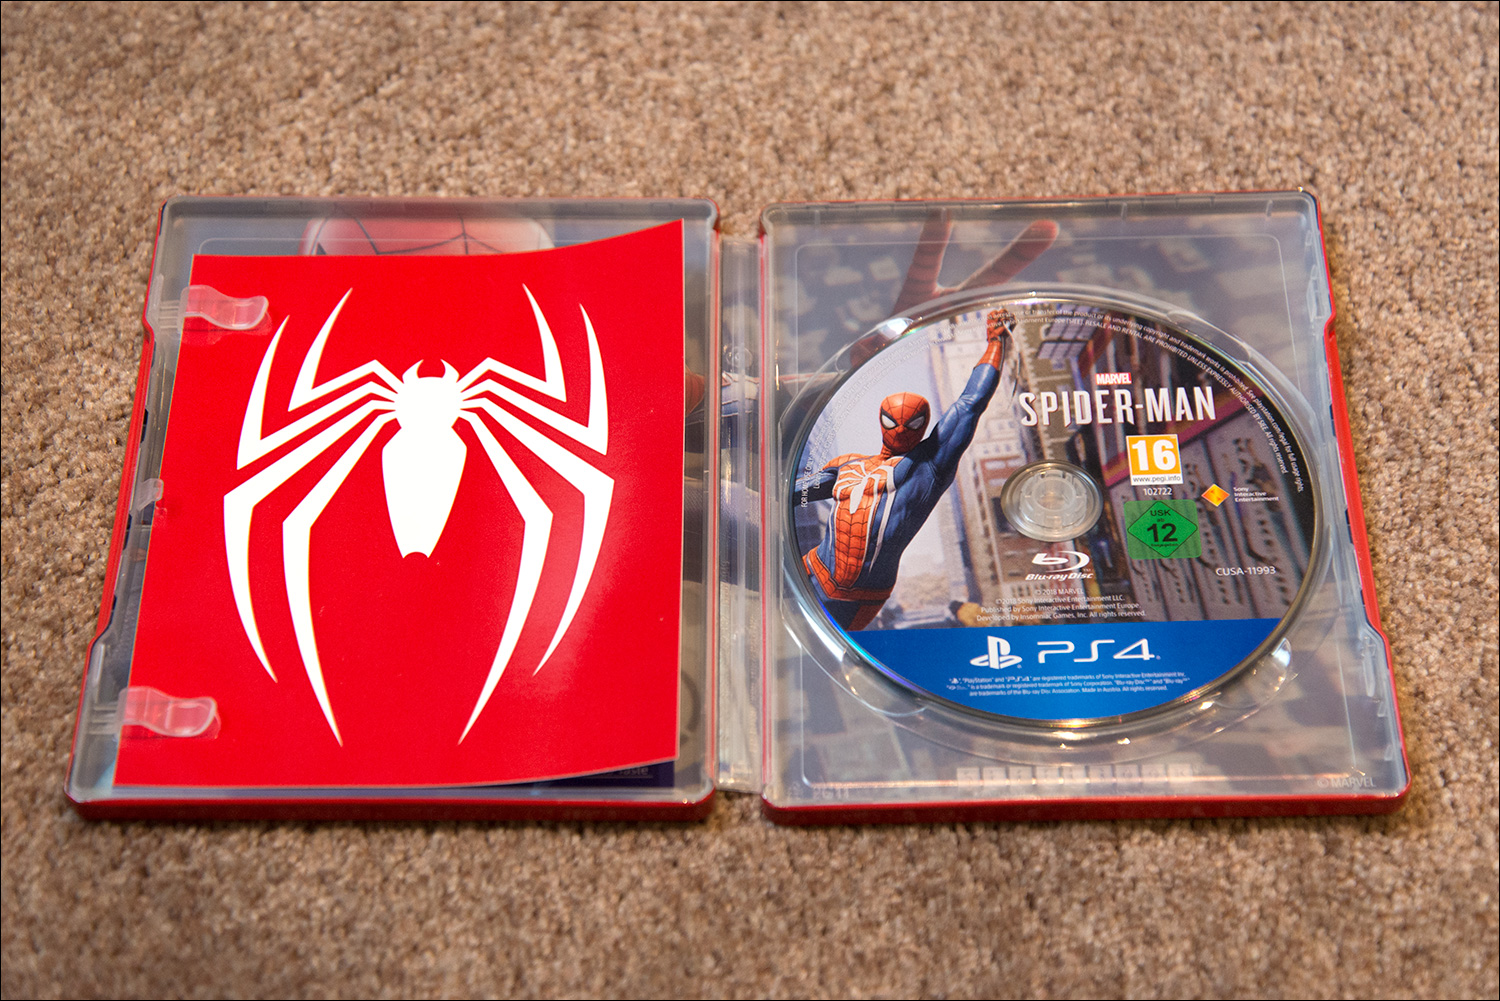 Spider-Man-Special-Edition-Steel-Book-Opened-frikigamers.com